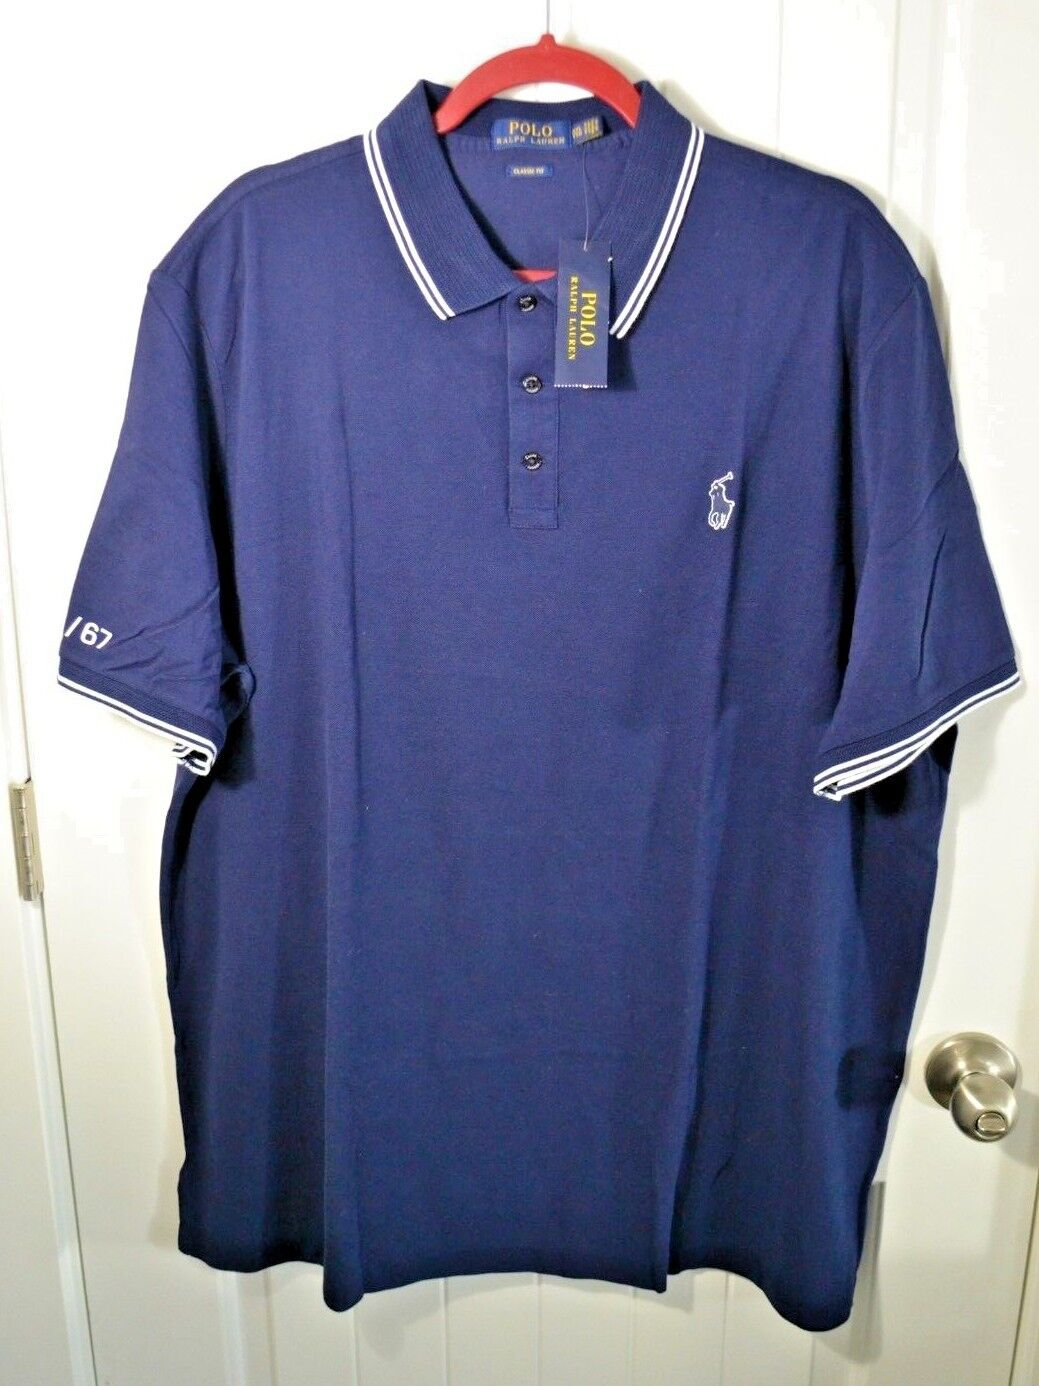 NEW Polo Ralph Lauren Uomo's Uomo's Uomo's Button Front Shirt SHORT Sleeve Oxford arancia  85 d54204